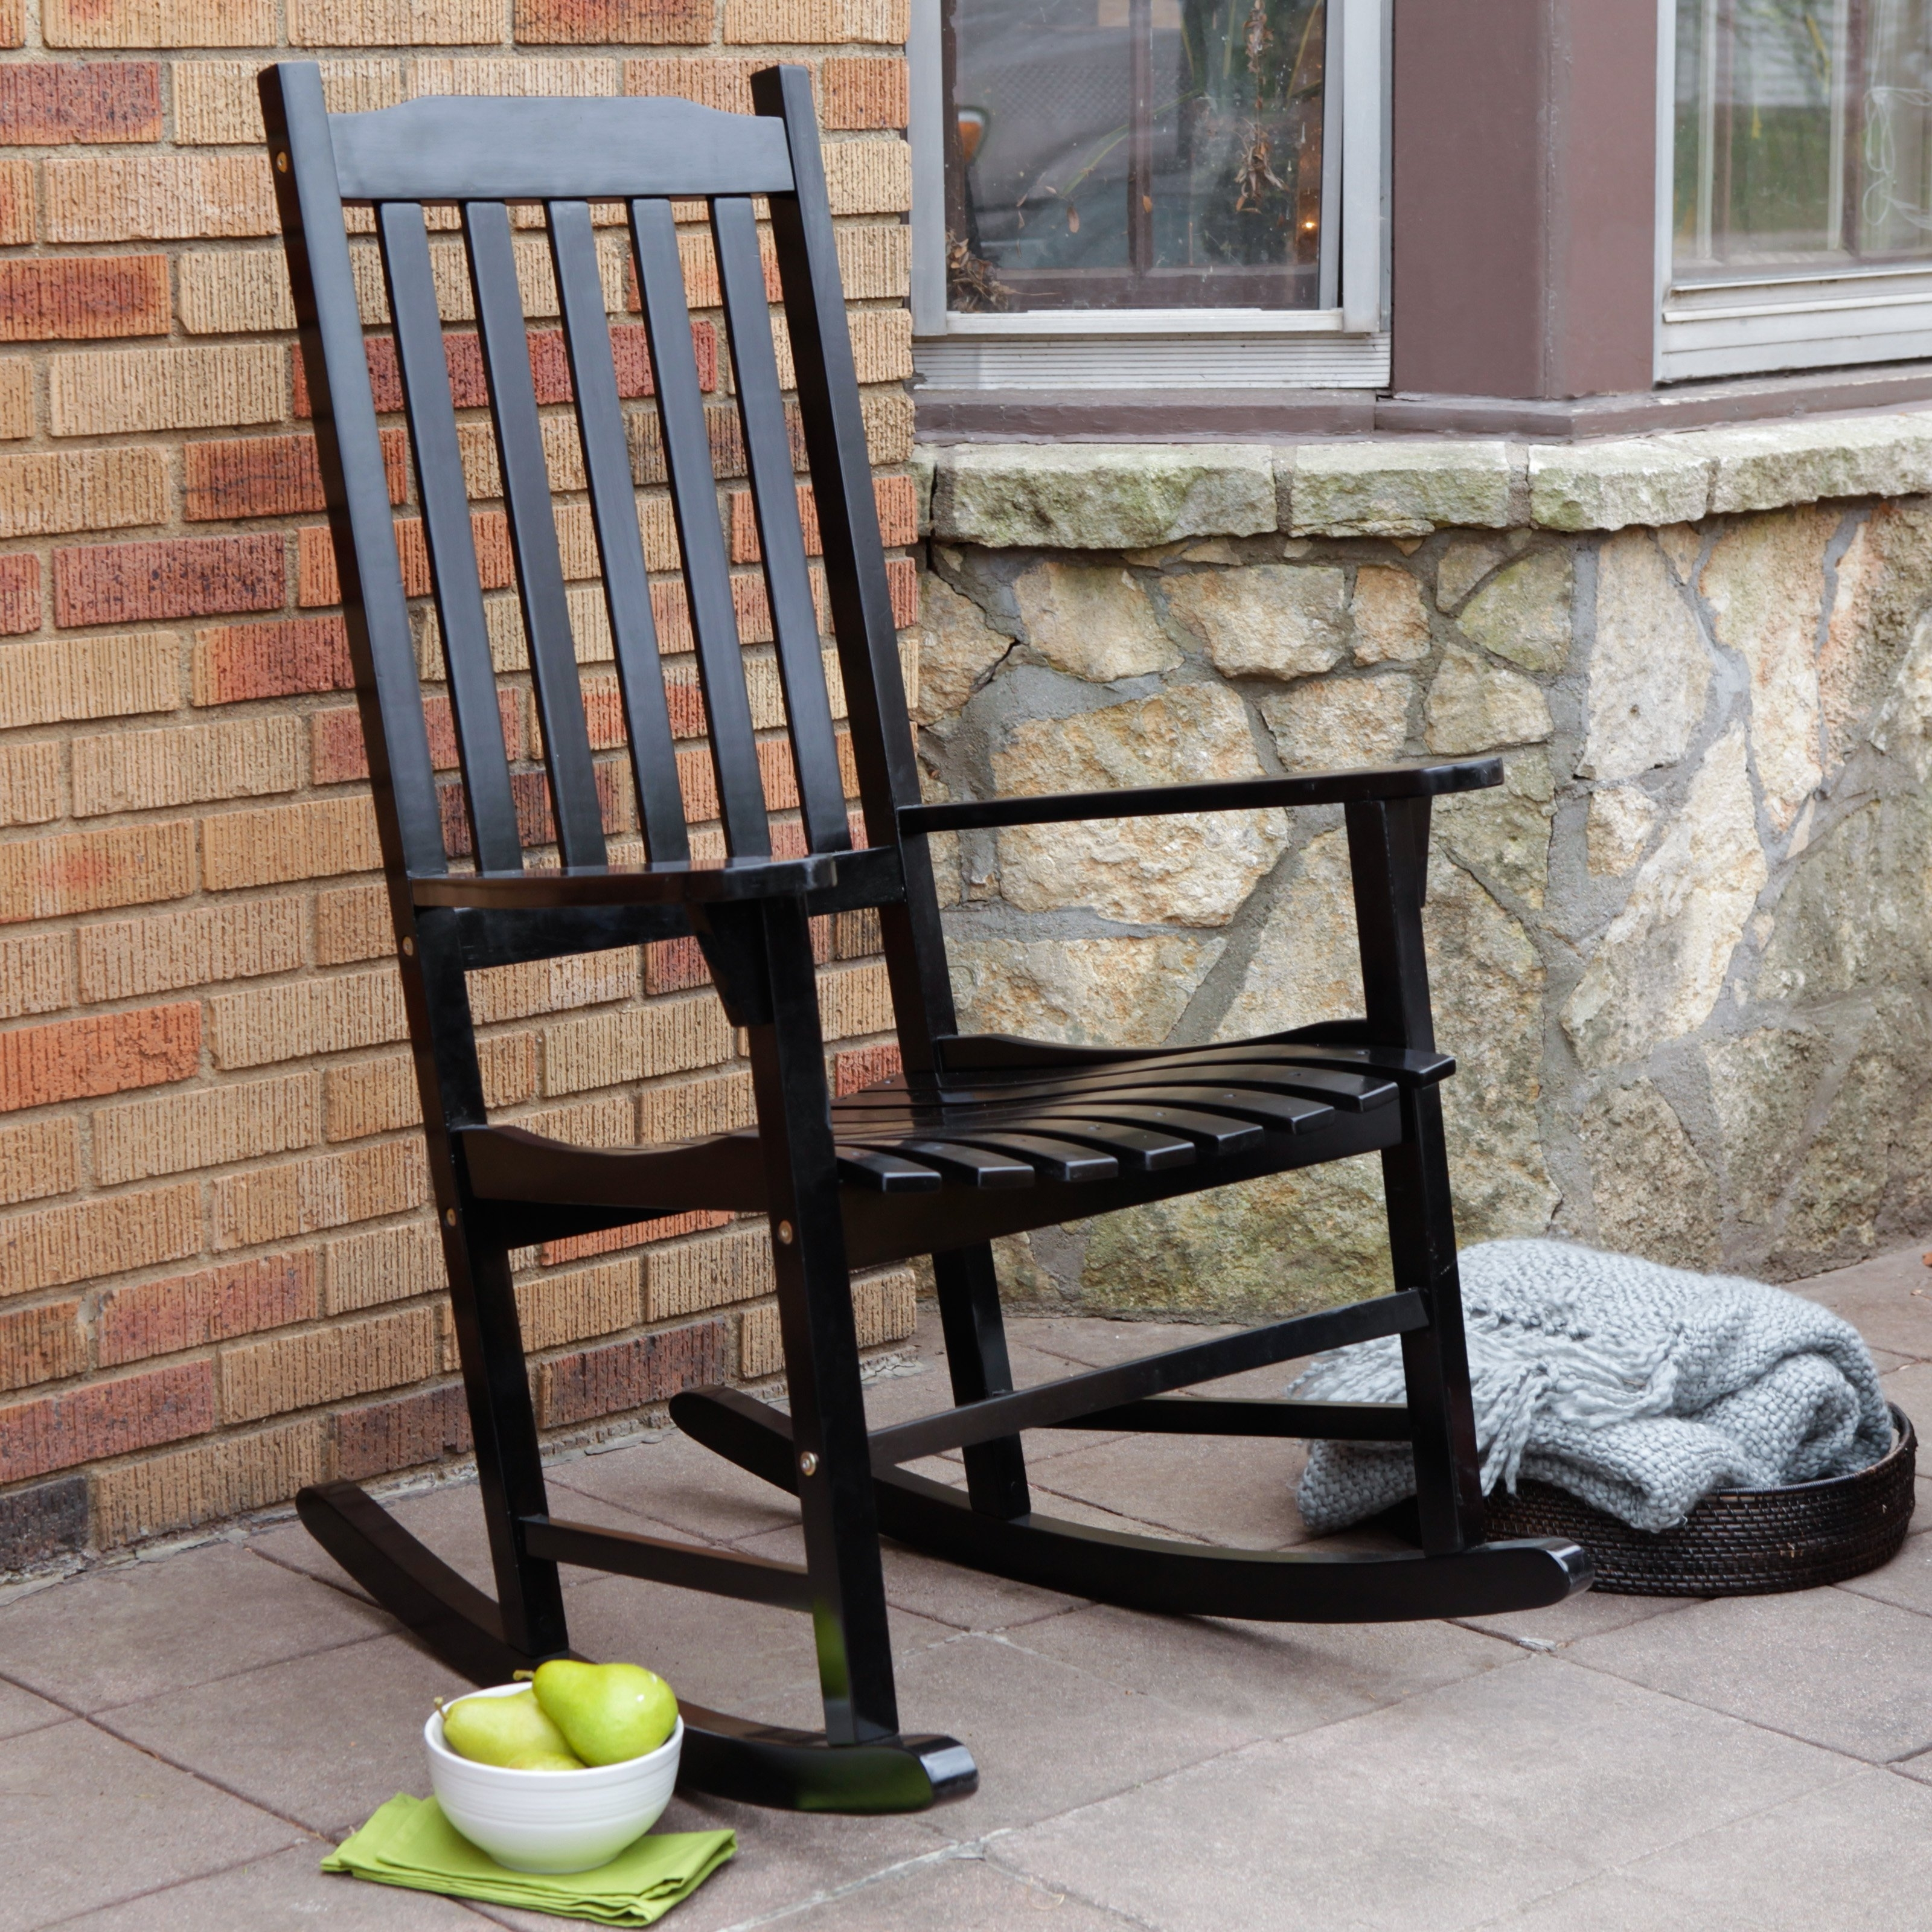 Popularity Gaining Outdoor Rocking Chairs – Carehomedecor Inside Widely Used Wooden Patio Rocking Chairs (View 20 of 20)